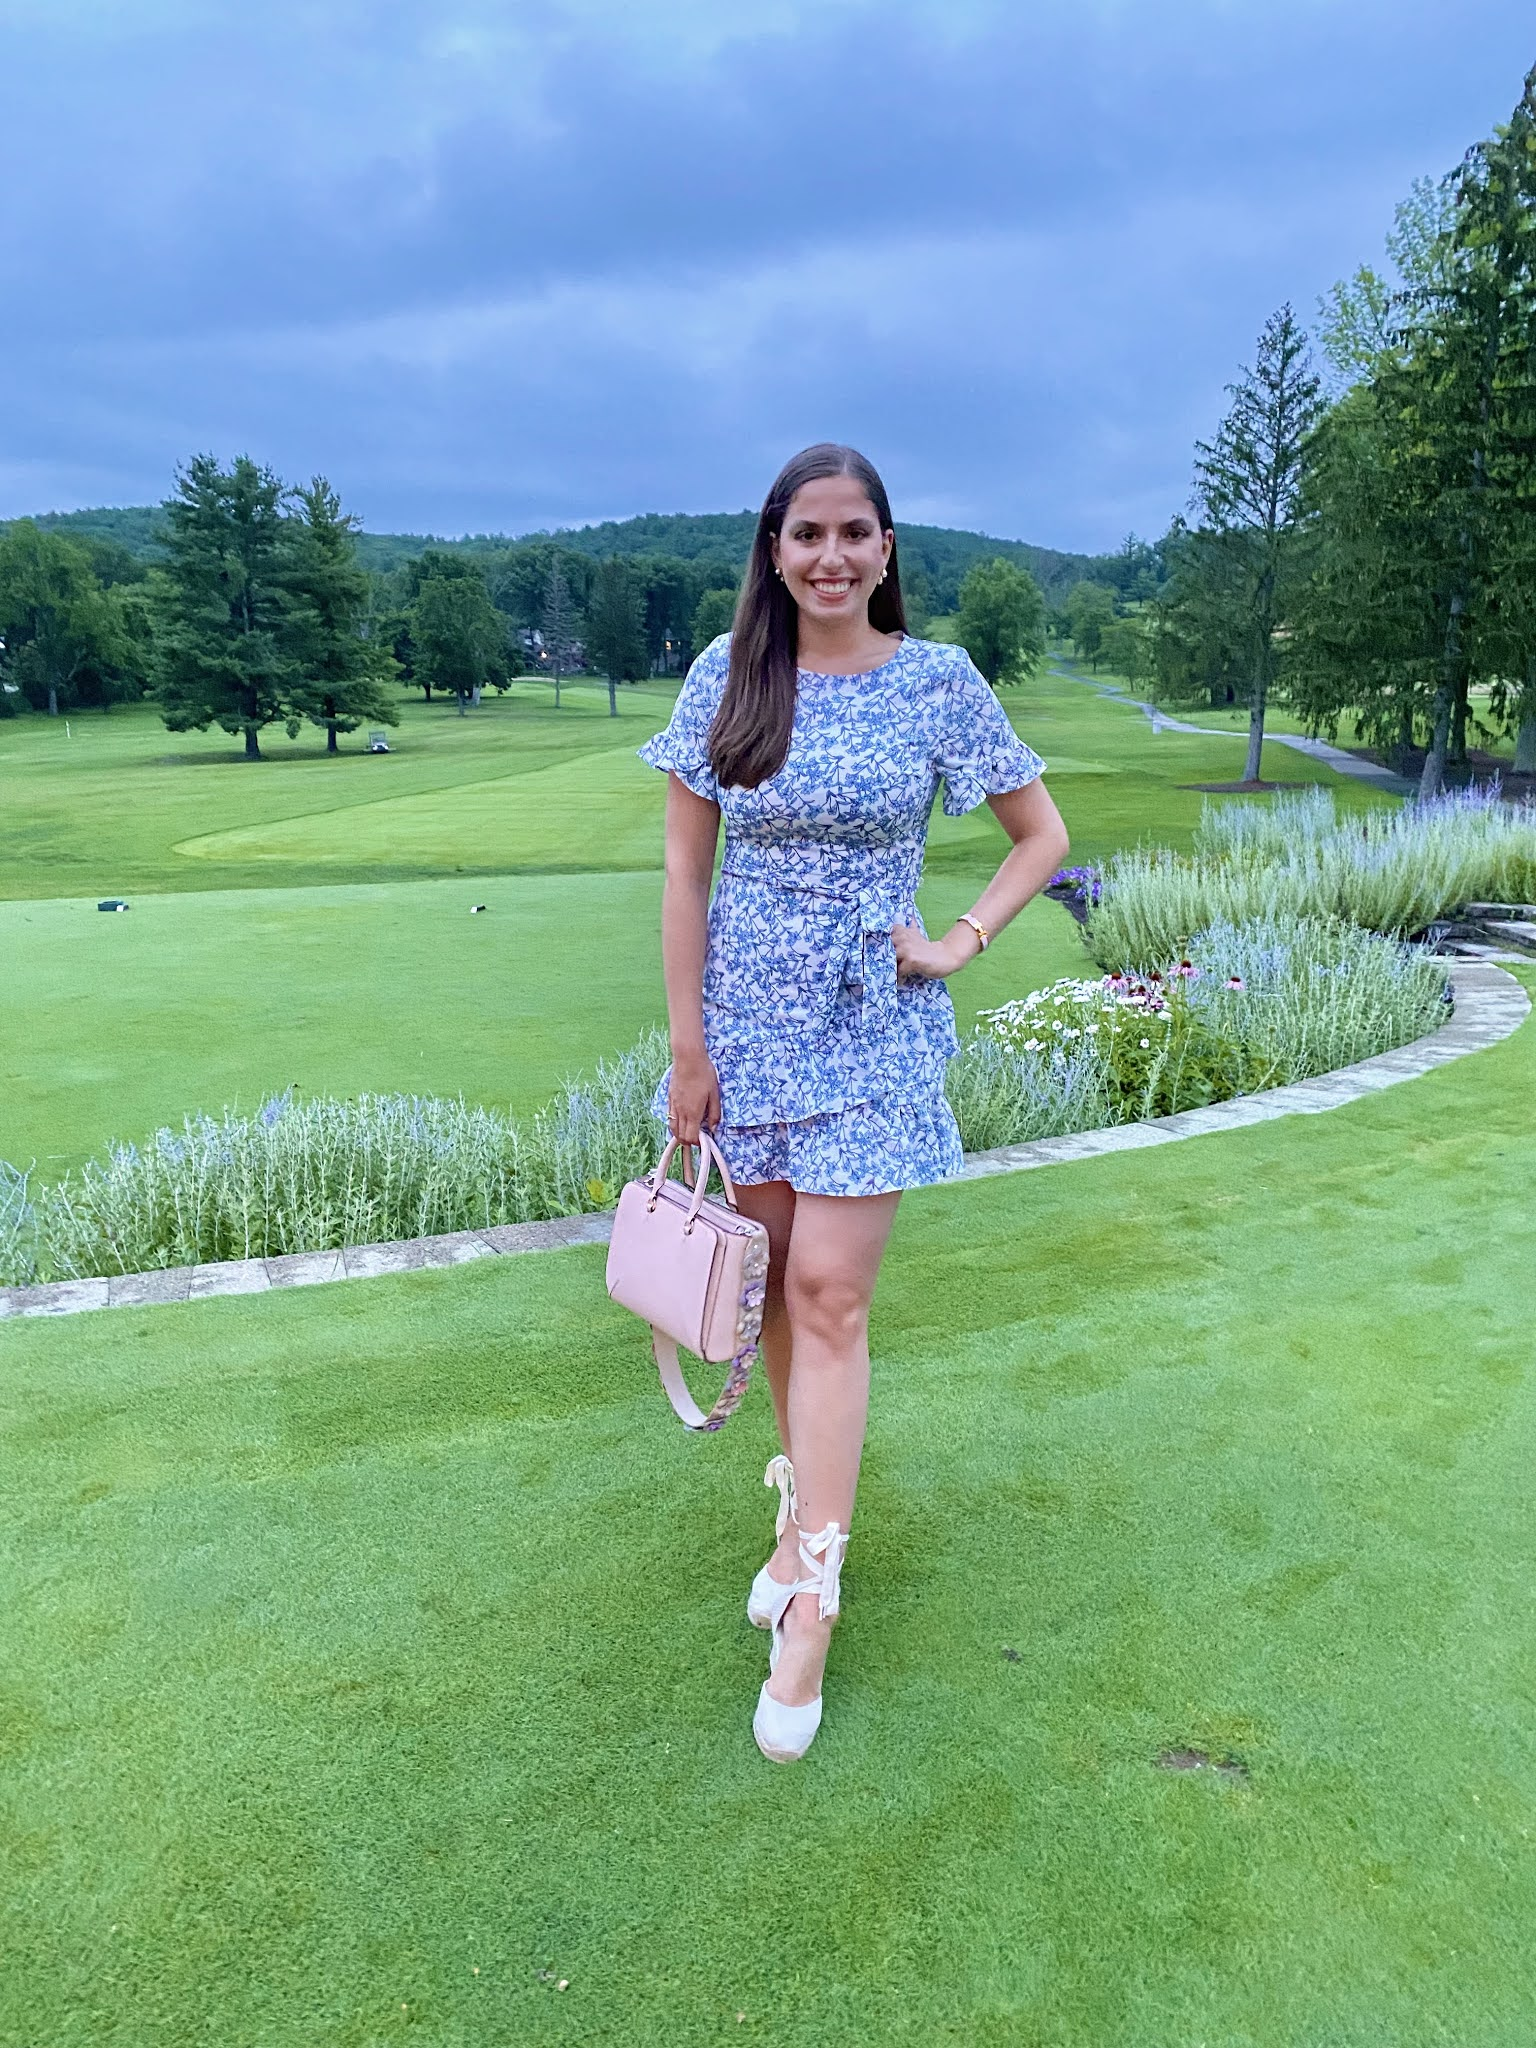 wedges, soludos, espadrilles, golf course, blue and white, floral dress